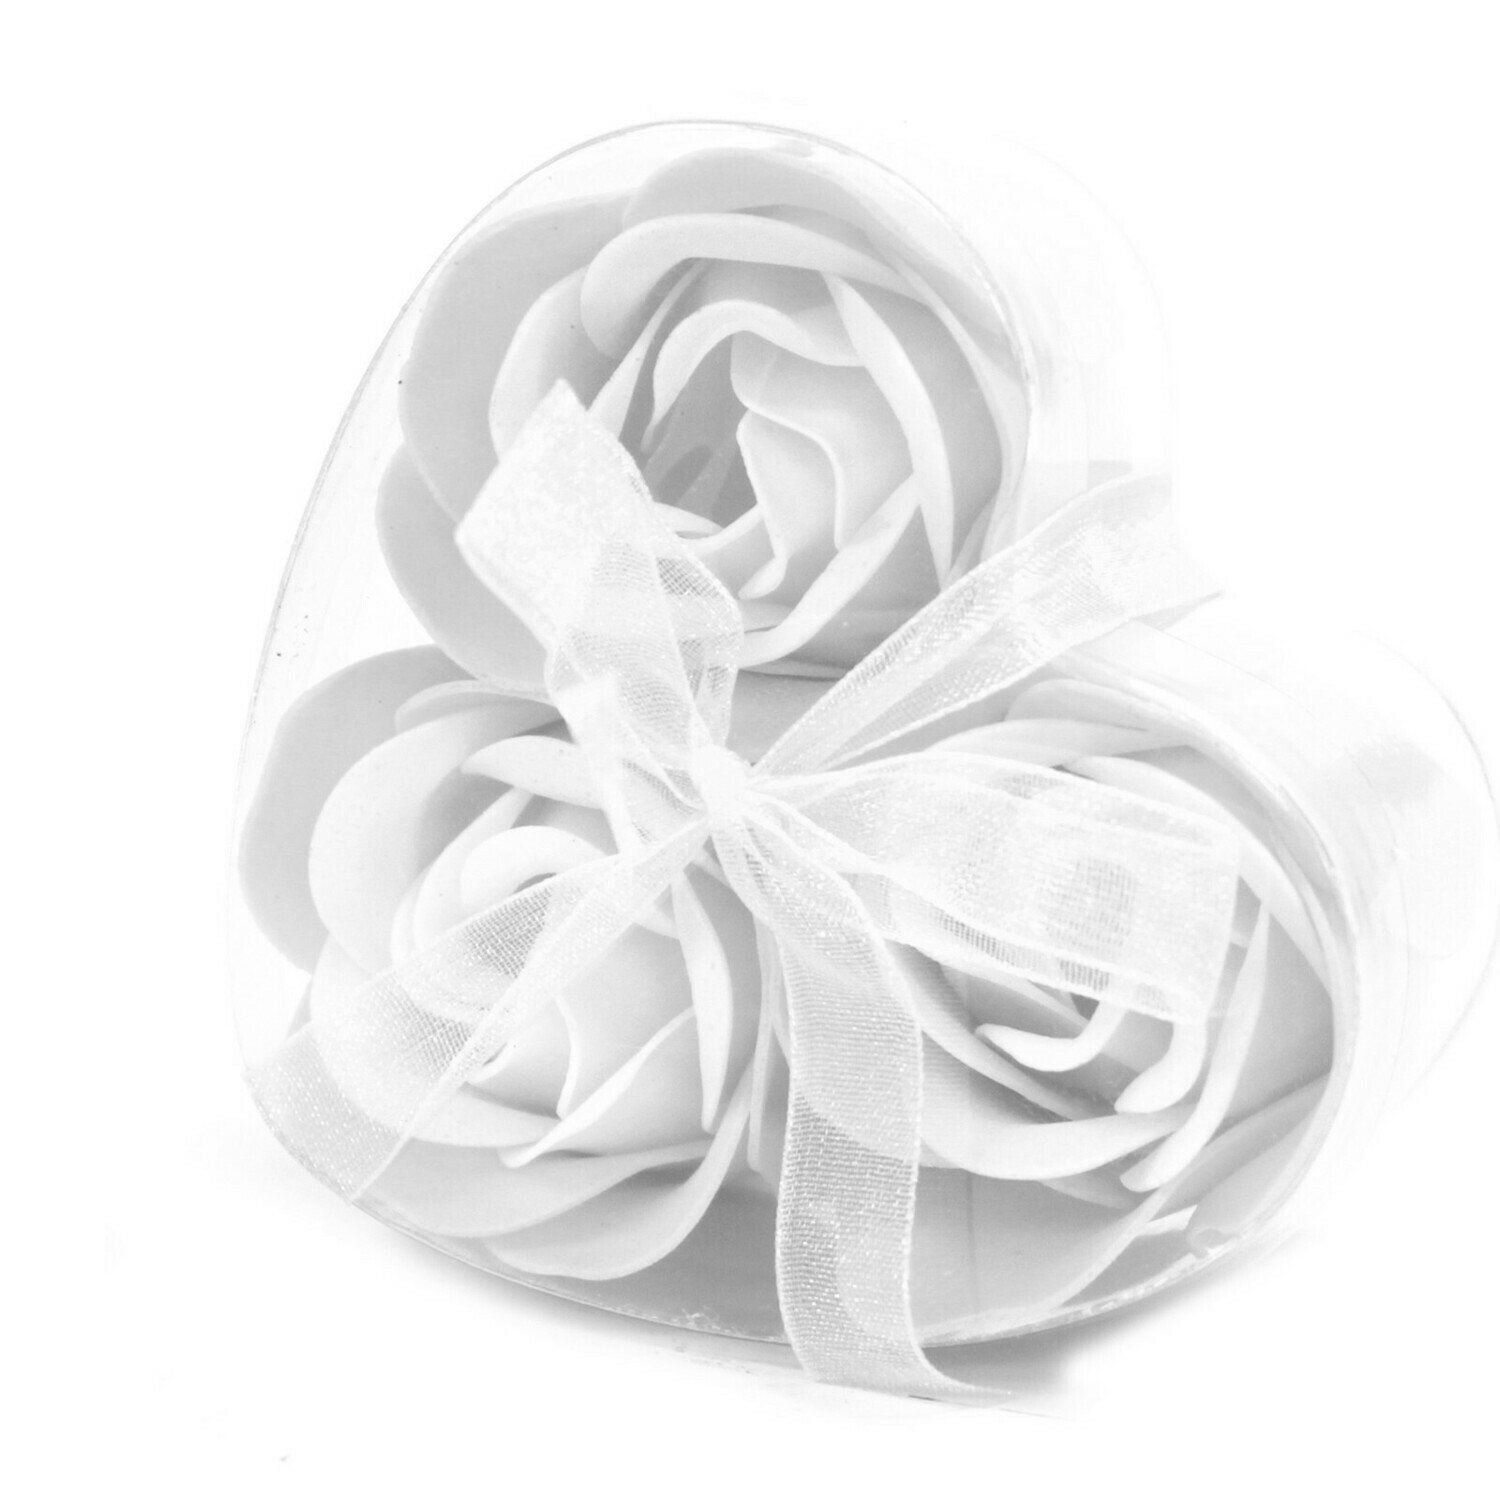 6 Luxury Soap Roses - 3 Lavender and 3 White